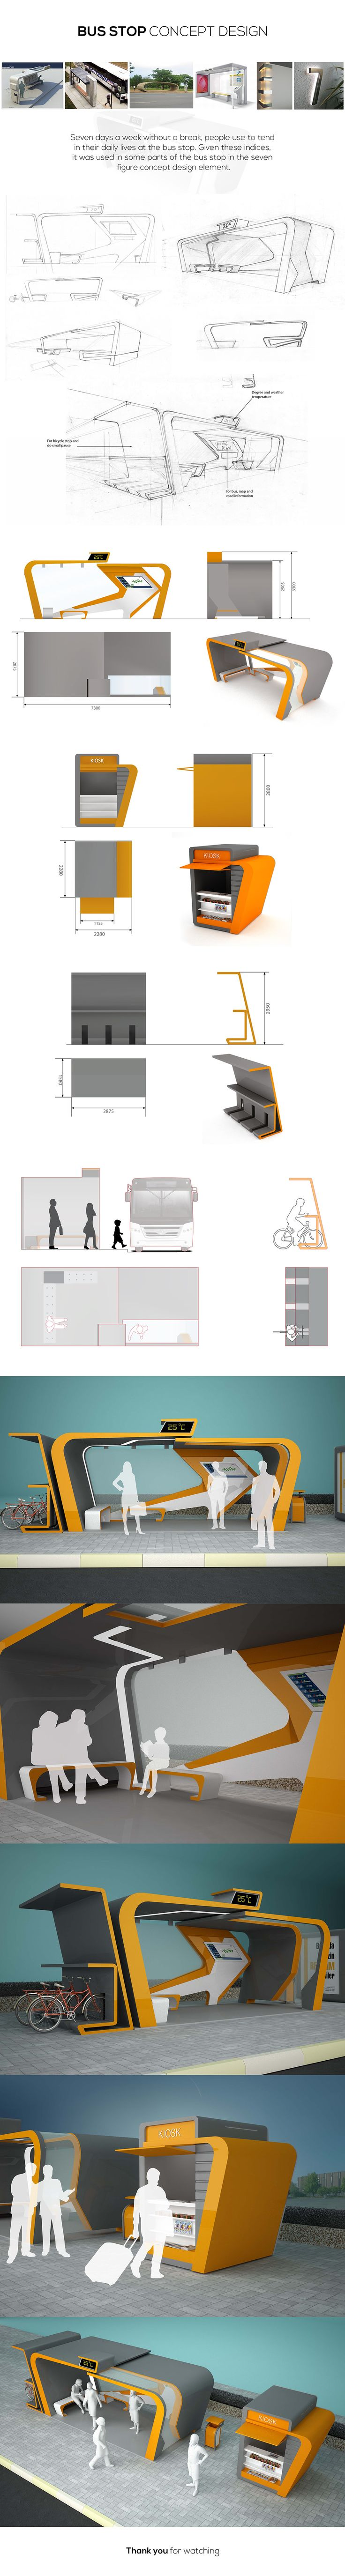 Bus stop Concept Design on Behance